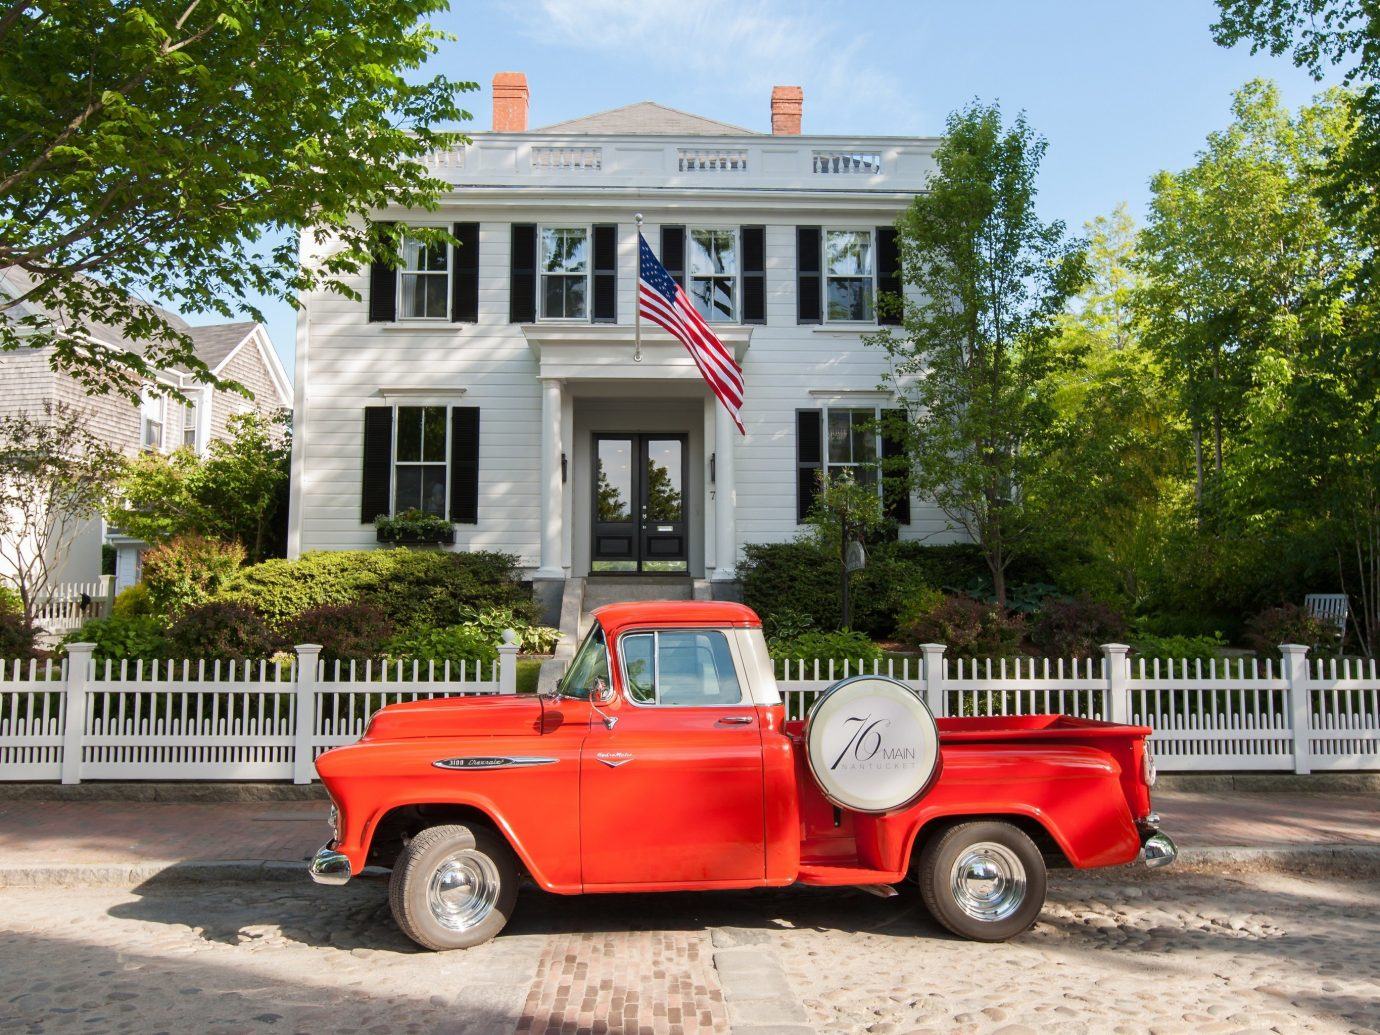 Trip Ideas tree outdoor car vehicle land vehicle red house city car antique car vintage car automobile make pickup truck parked truck jeep orange curb